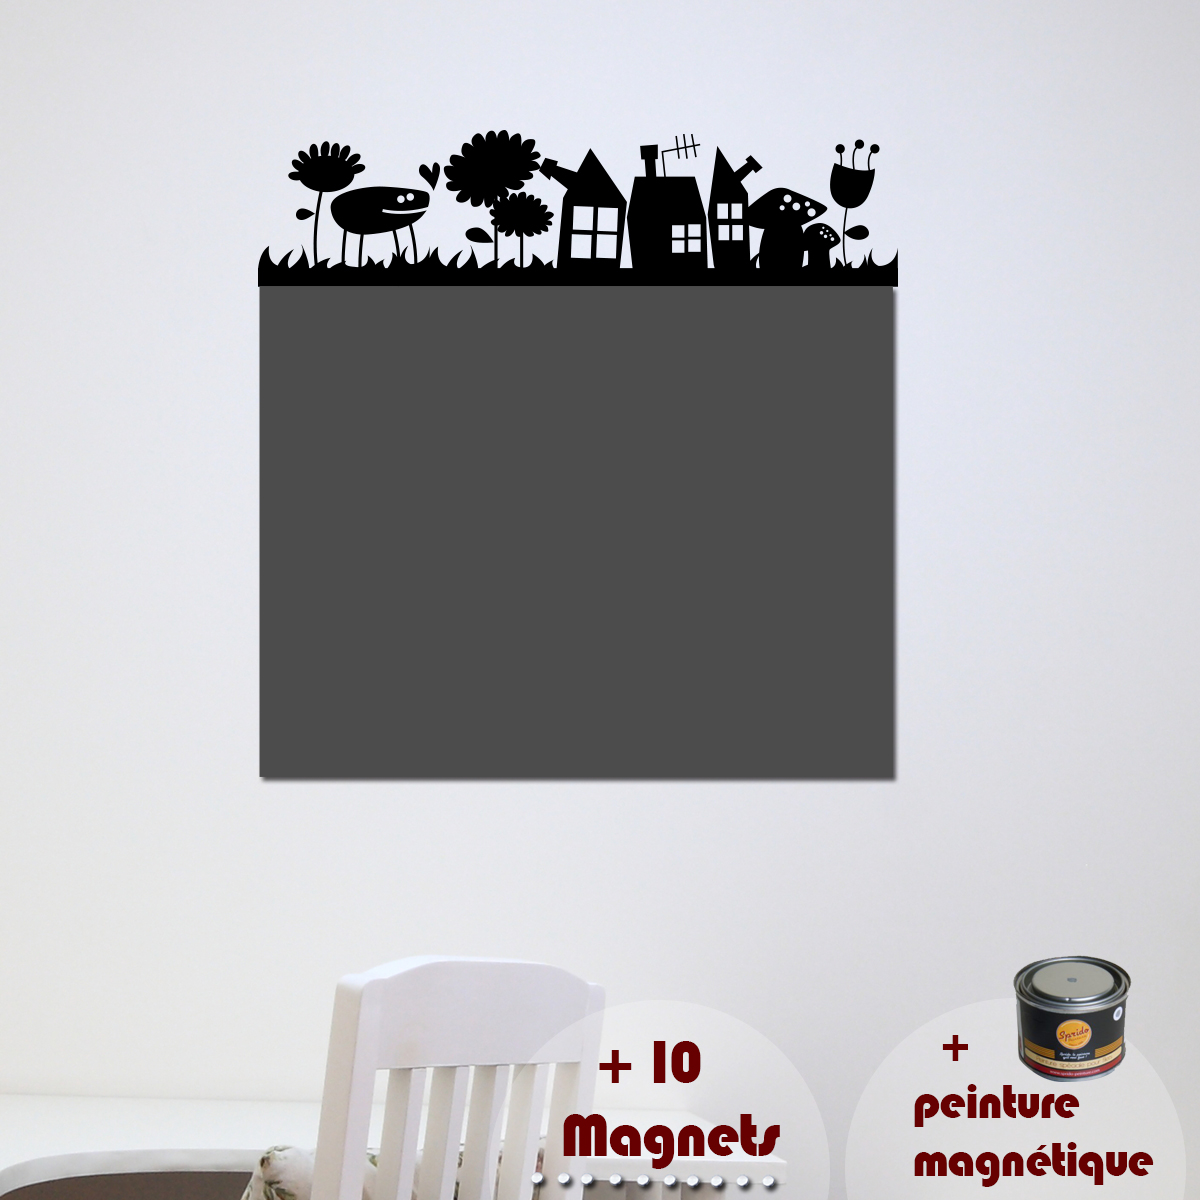 papier peint magn tique peinture magn tique avec sticker herbe ambiance. Black Bedroom Furniture Sets. Home Design Ideas